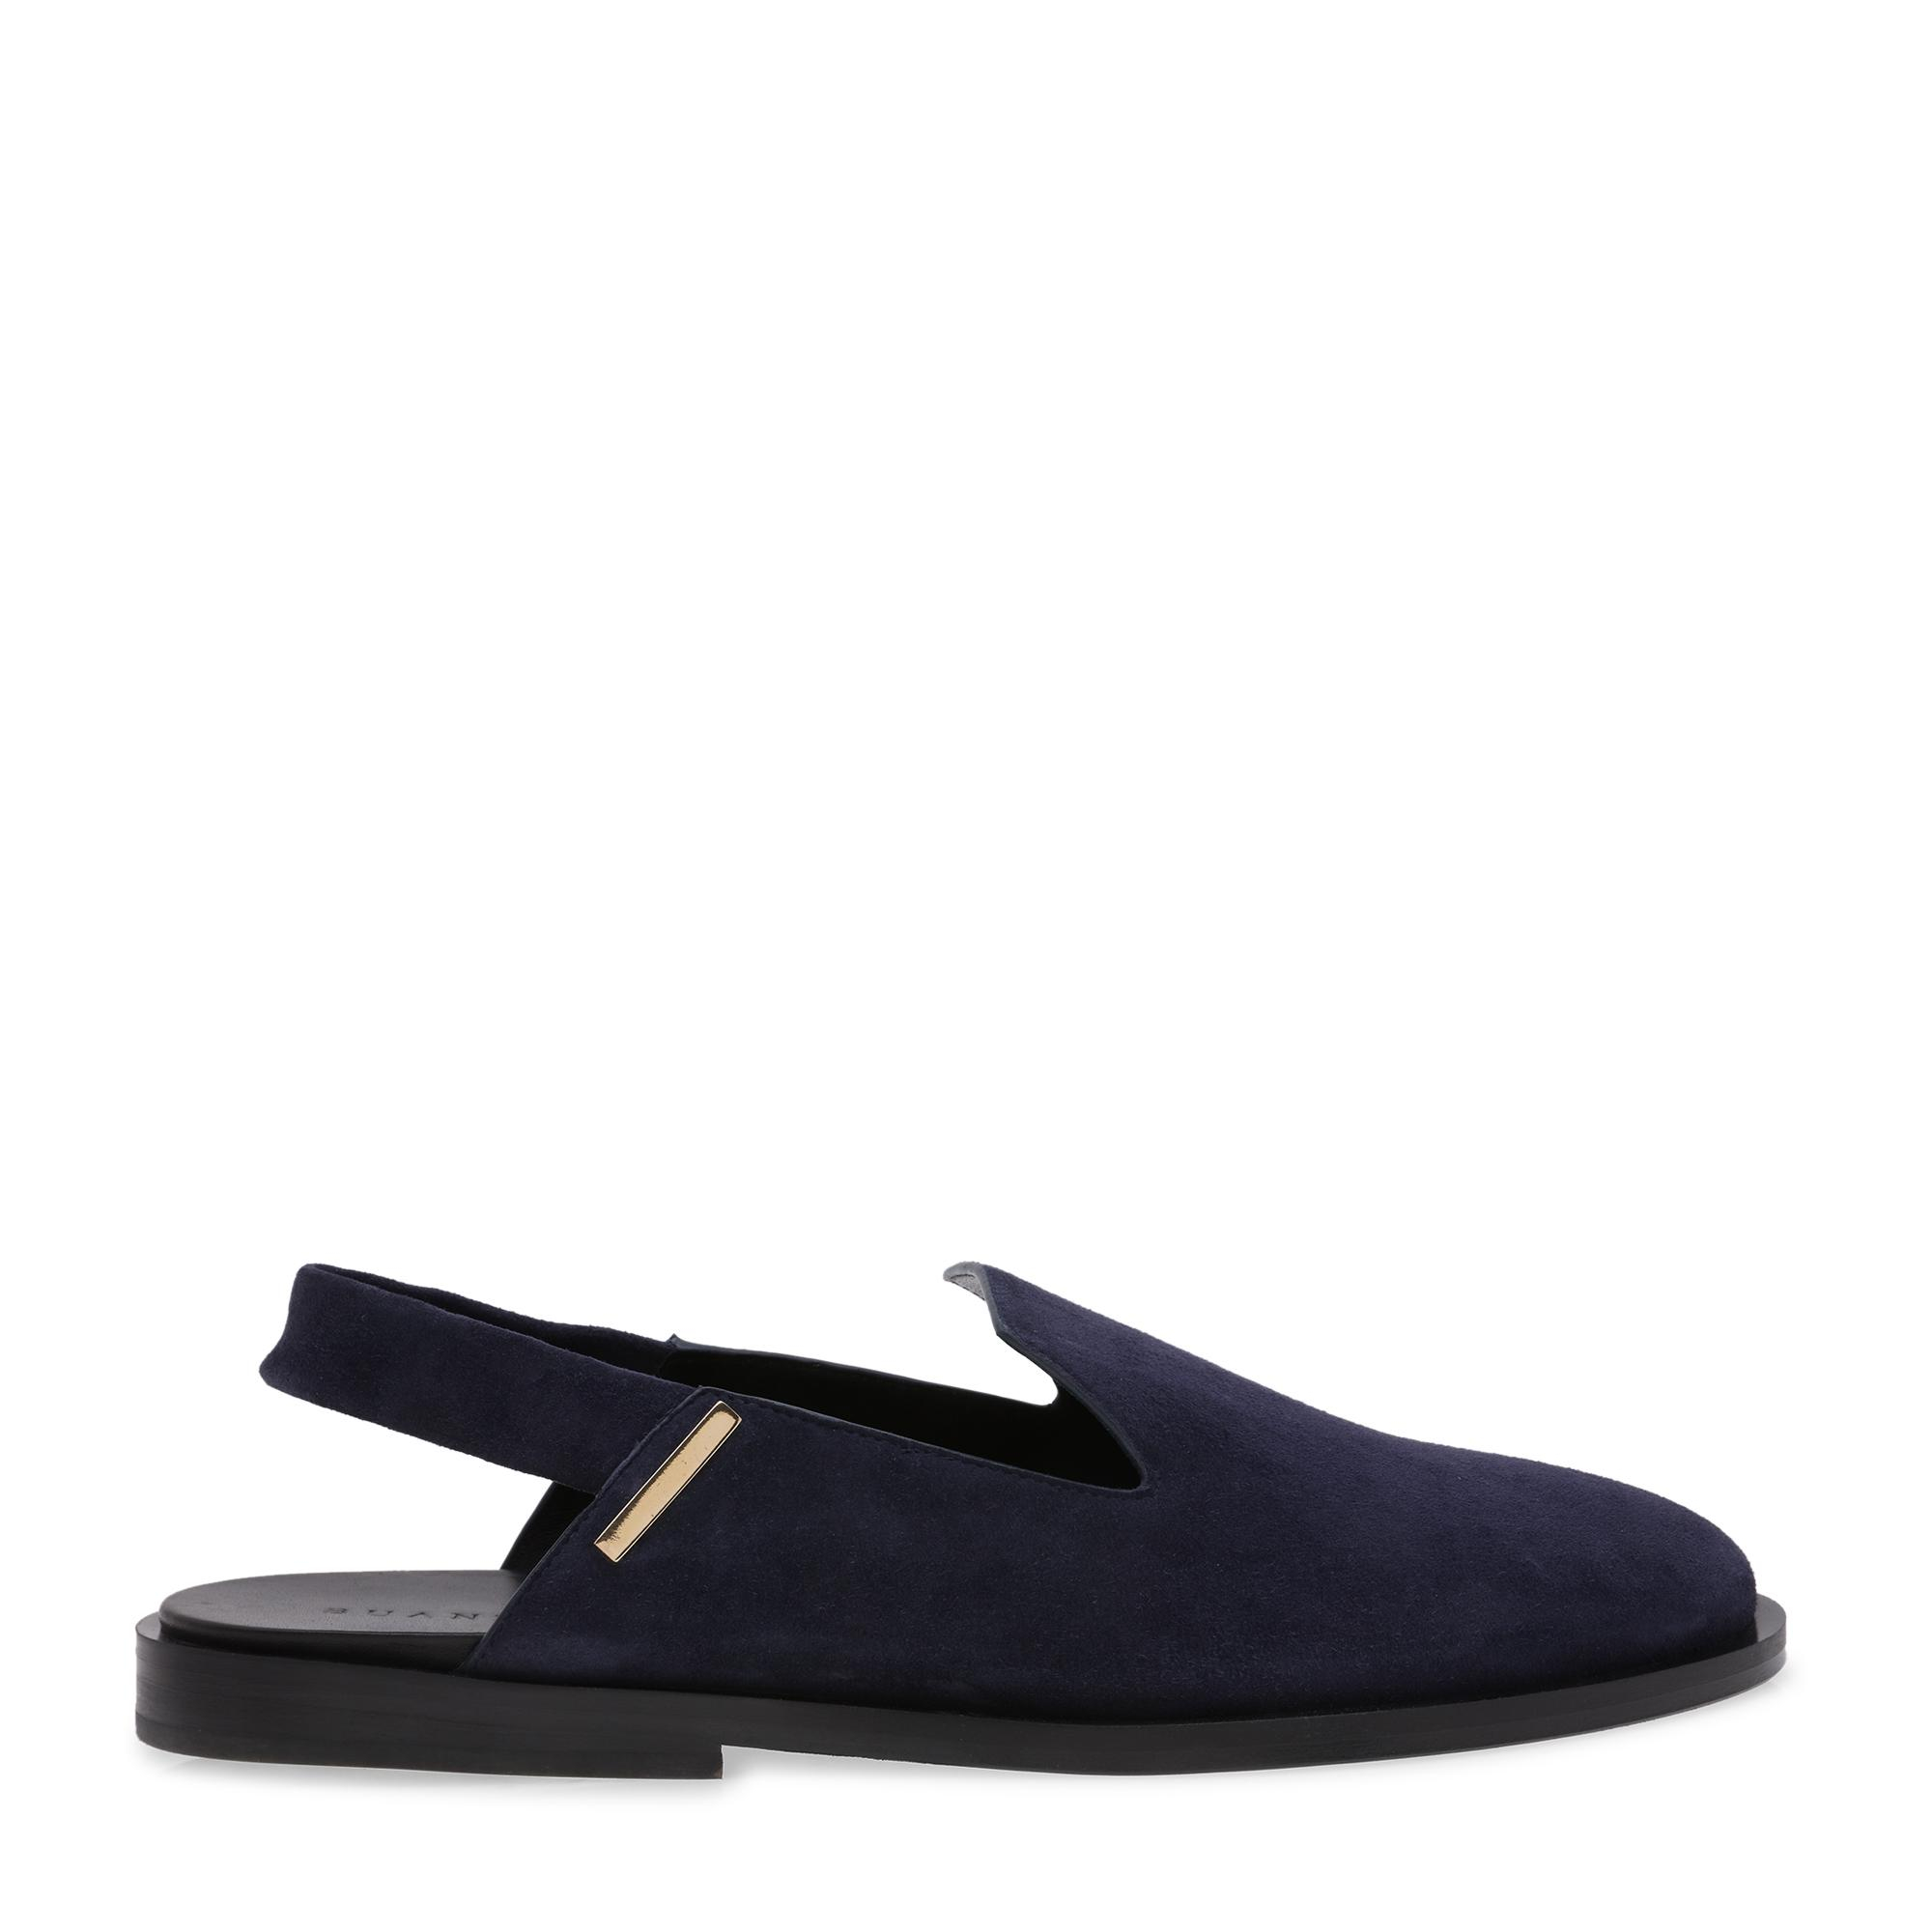 Chasca loafers